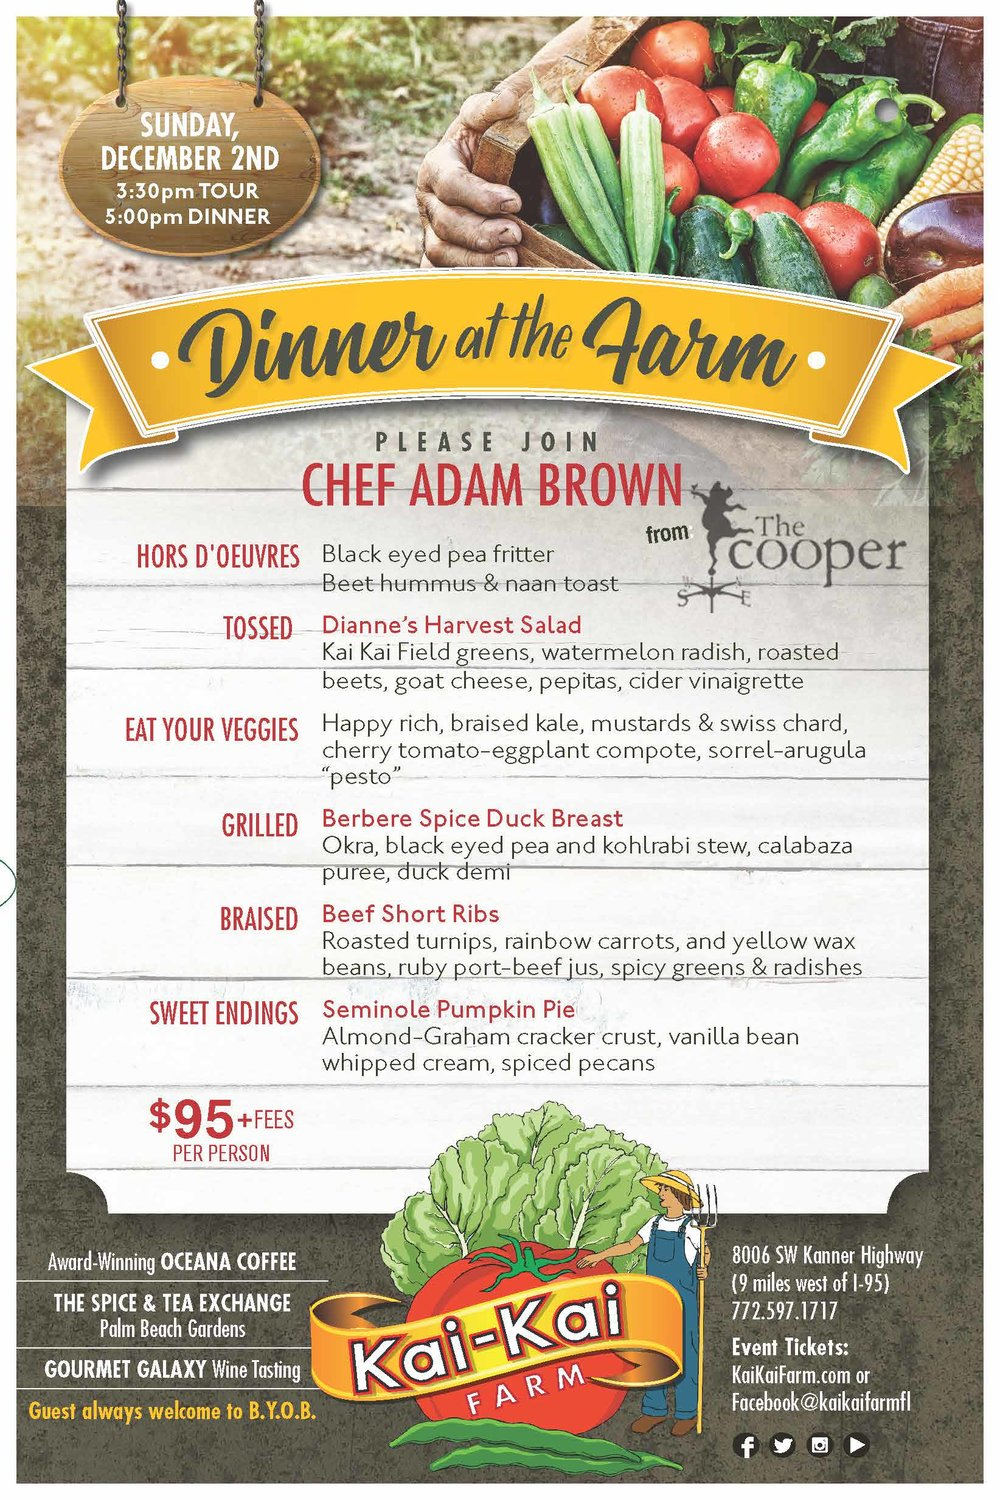 Adam Brown Dinner Poster PROOF.jpg